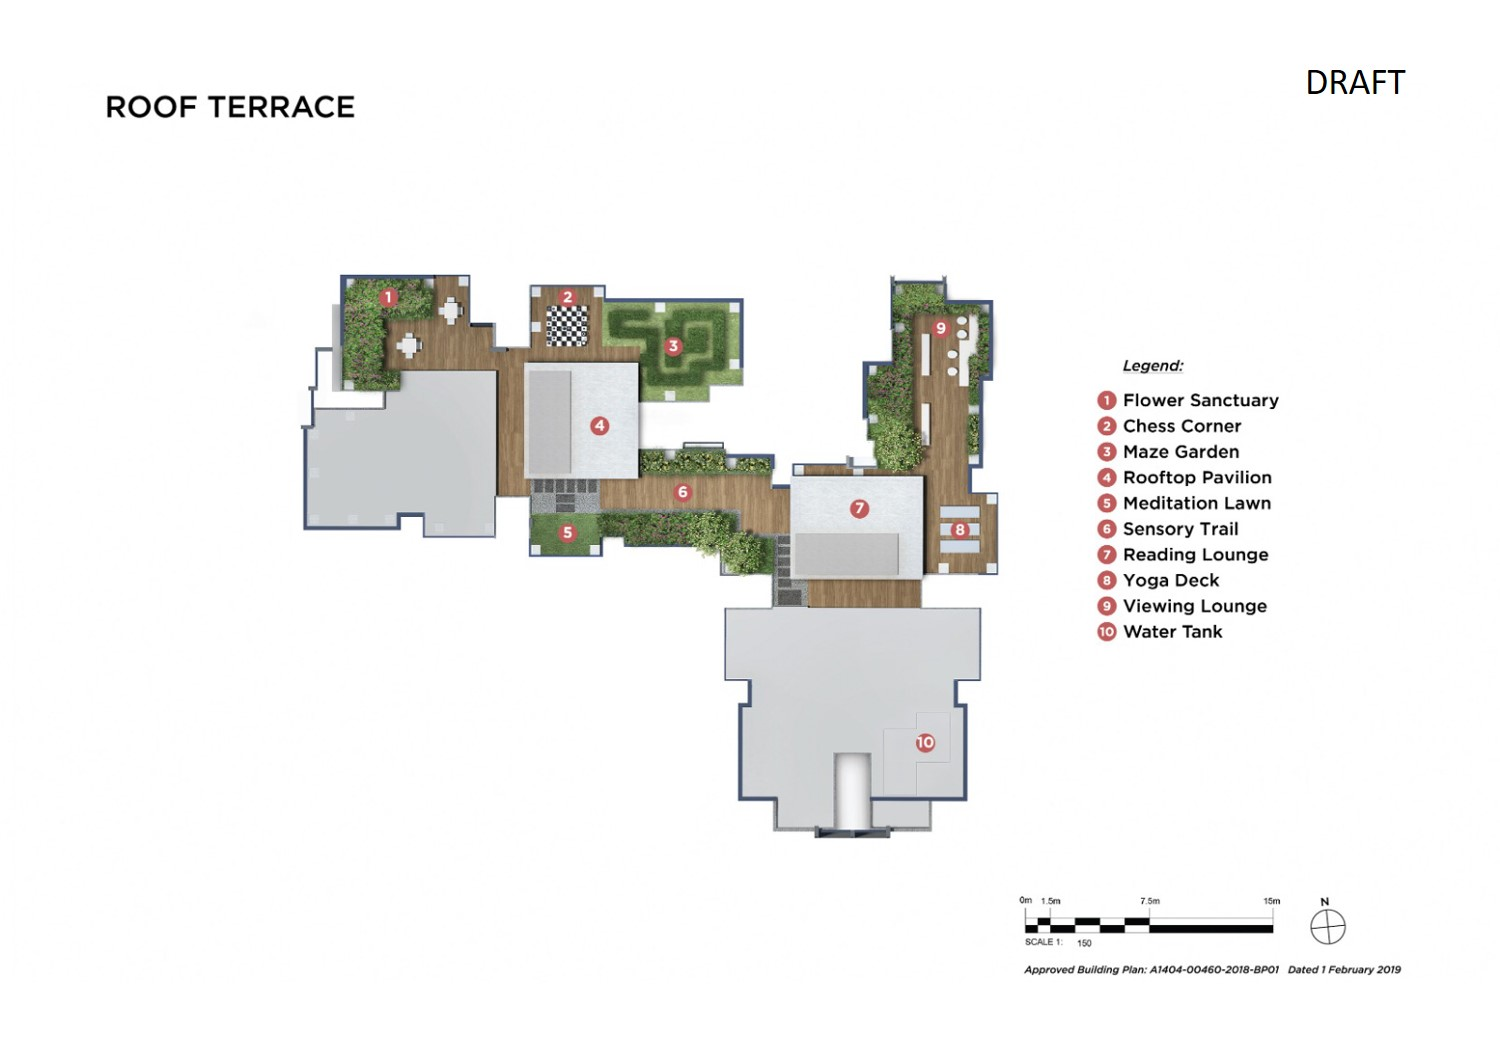 Wilshire Residences DRAFT Roof Terrace.jpg